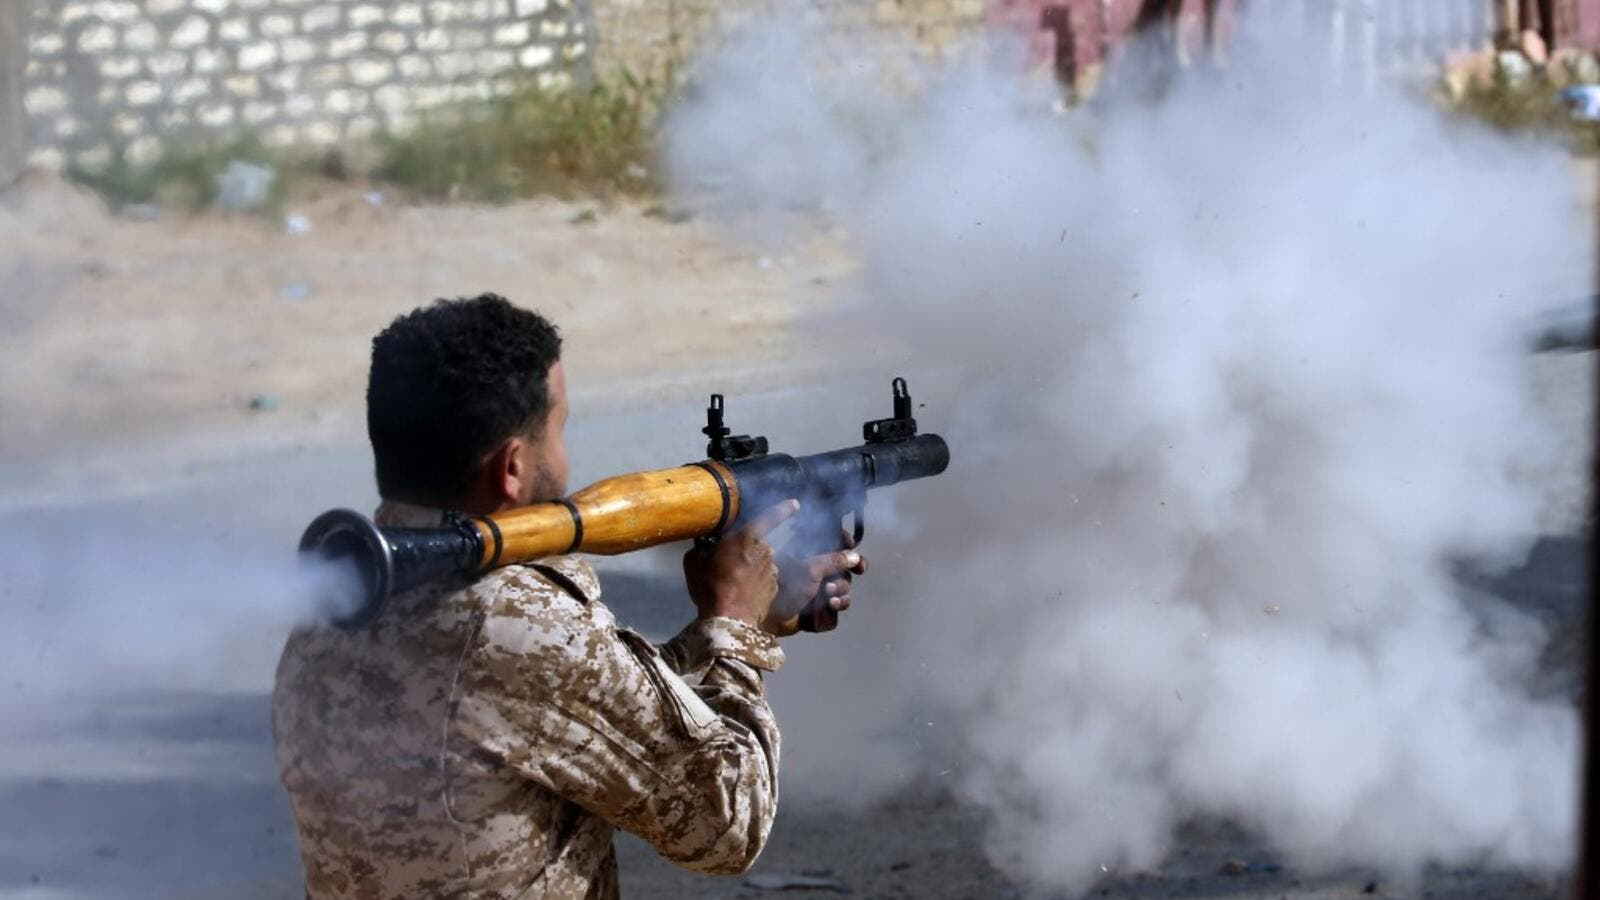 A Libyan fighter loyal to the Government of National Accord (GNA) fires a rocket propelled grenade during clashes with forces loyal to strongman Khalifa Haftar south of the capital Tripoli's suburb of Ain Zara, on April 20, 2019. (AFP)